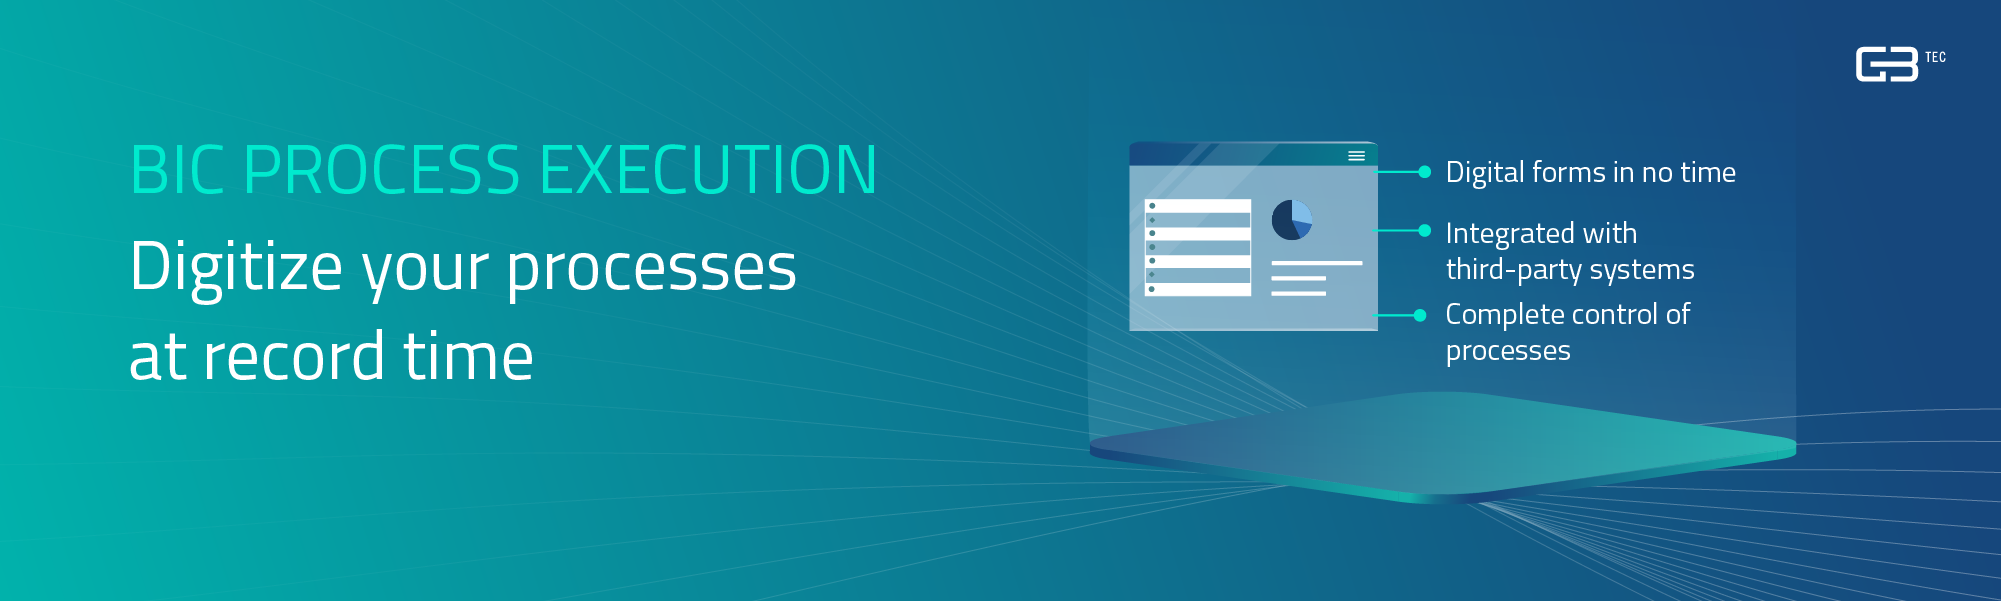 Review BIC Process Execution: Execute and automate processes with BIC Execution - appvizer